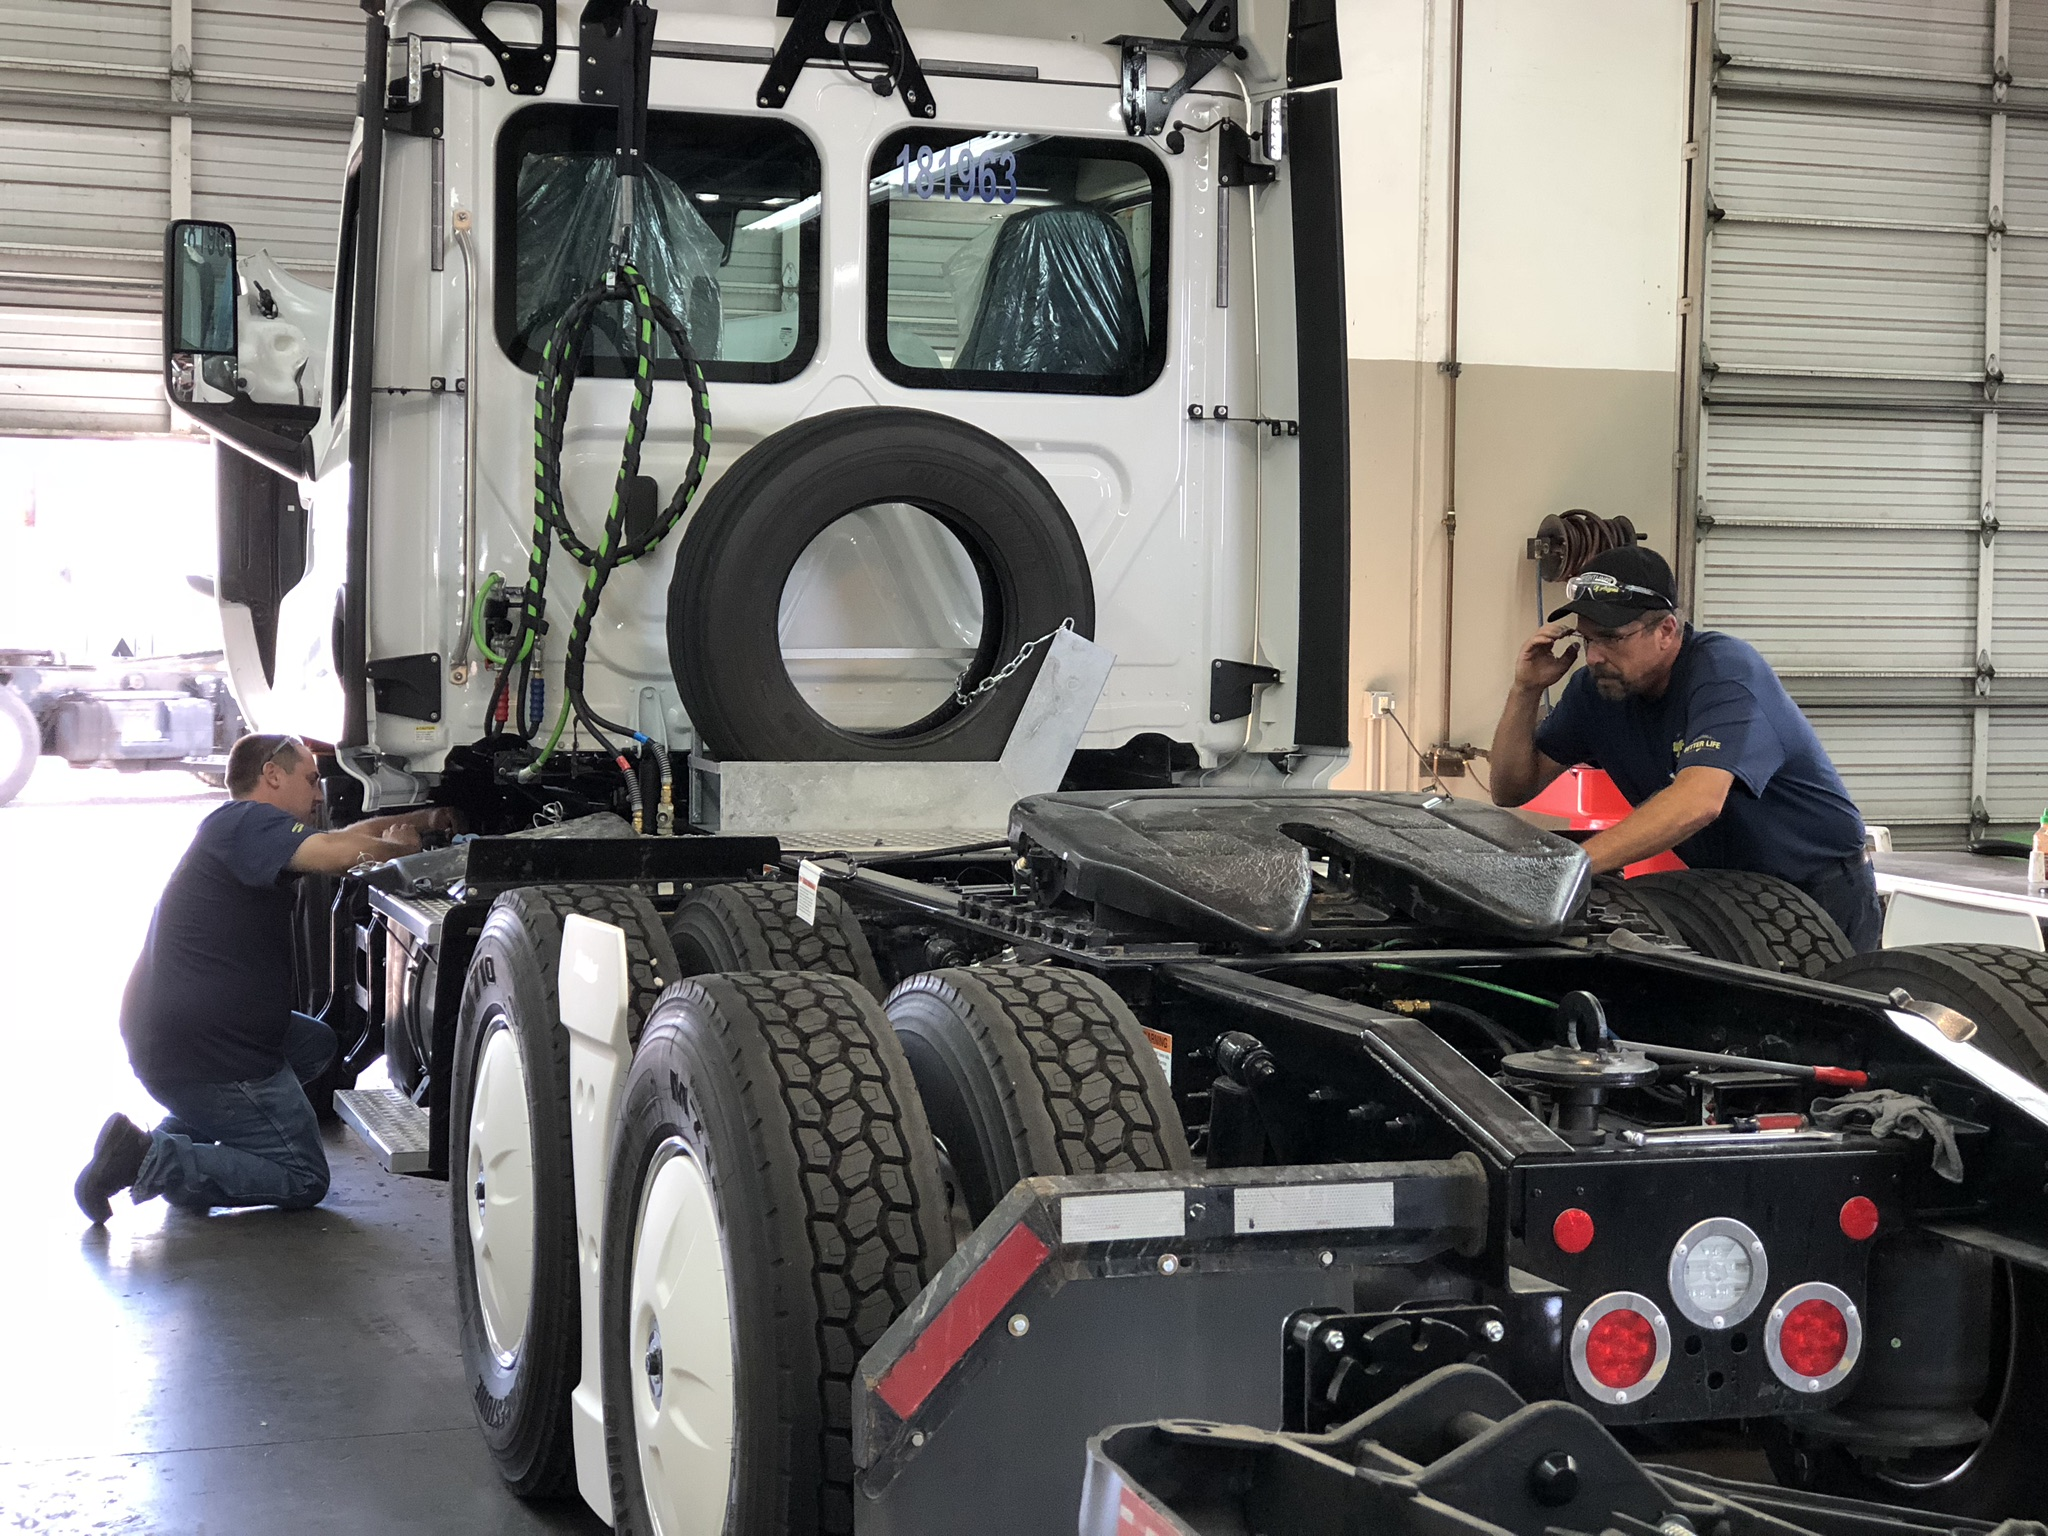 Technician Shortage Worse Than Previously Thought